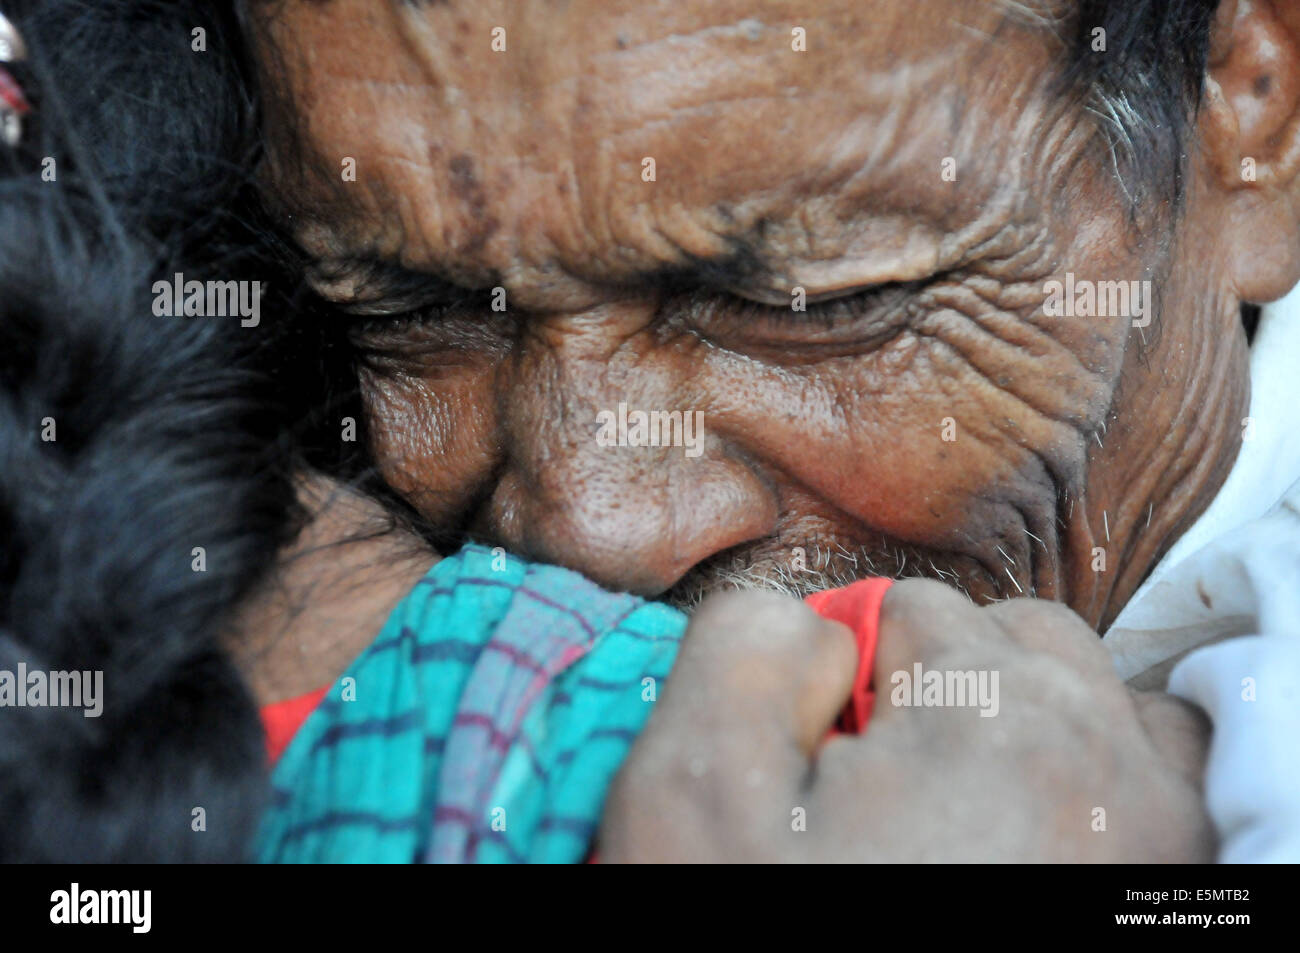 Mawa. 4th Aug, 2014. A man mourns for his missing relatives after a ferry accident in Munshiganj district, some - Stock Image